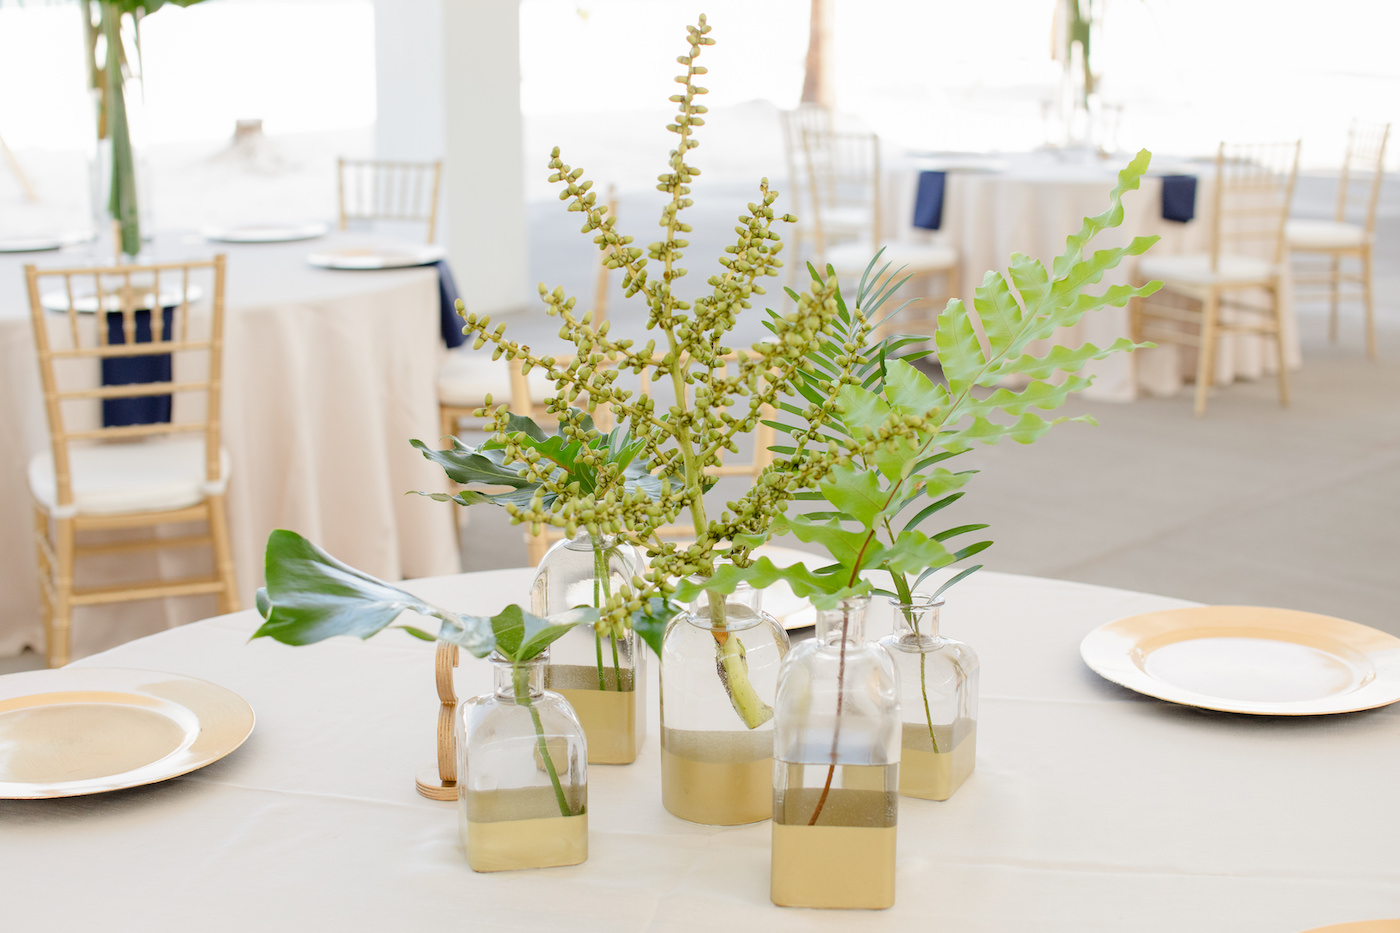 Clearwater Beach Wedding Venue Hilton Clearwater Beach   Modern Tropical Beach Outdoor Wedding Reception Centerpiece with Gold Dipped Bud Vase Bottles of Tropical Palm Frond Leaves